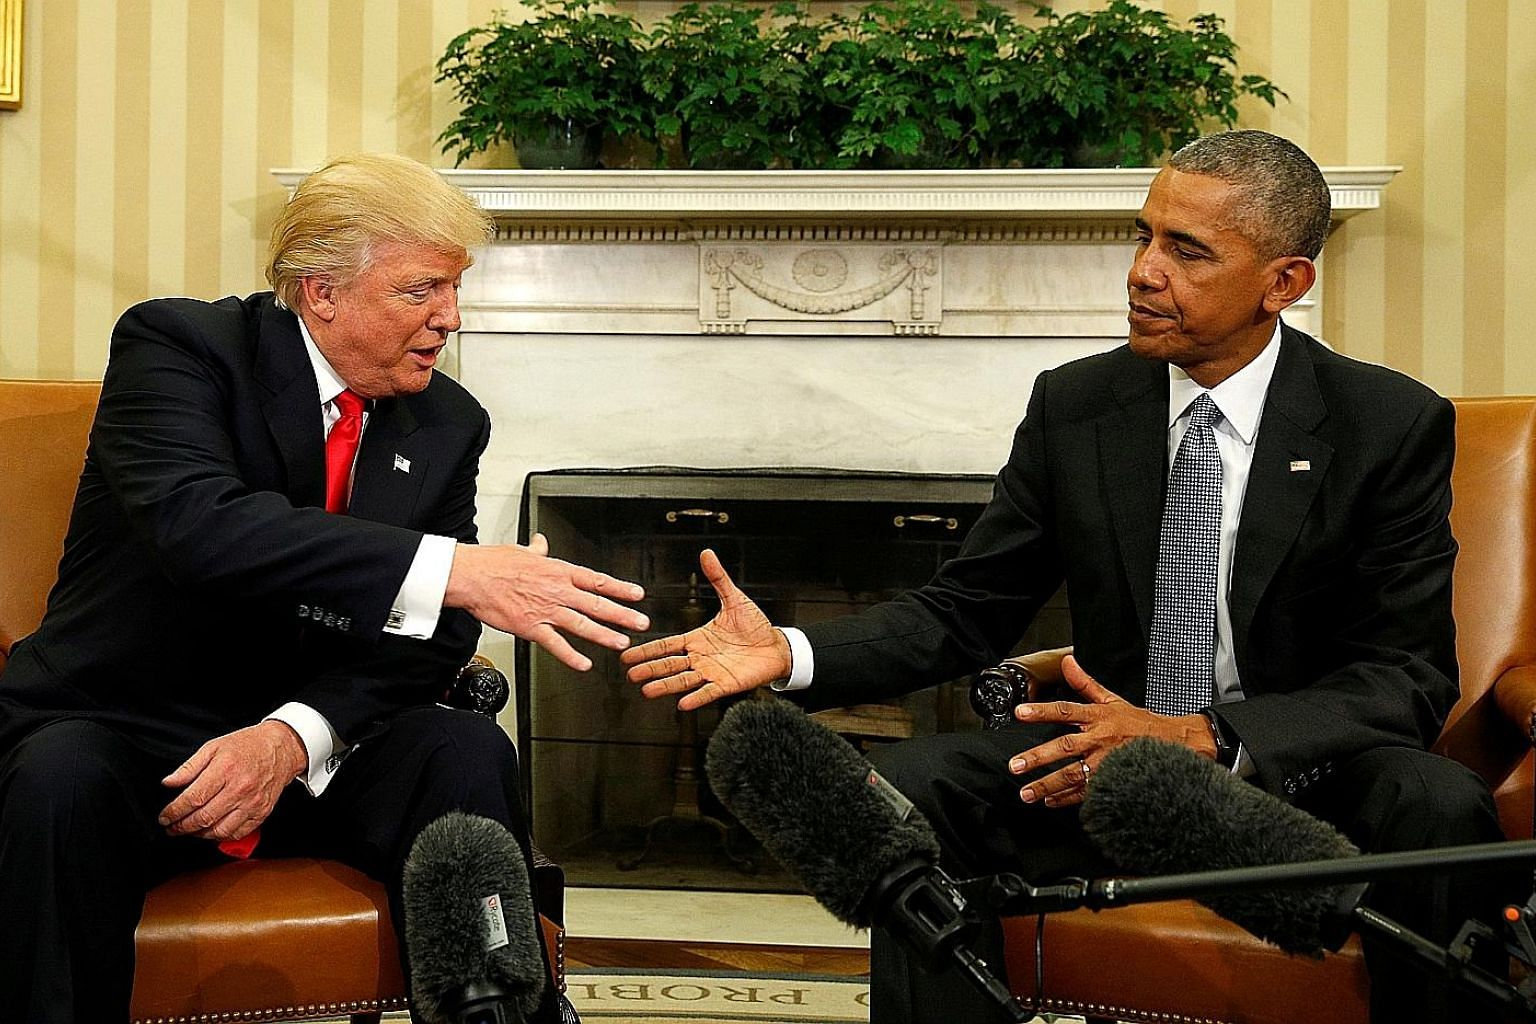 President-elect Donald Trump meeting then President Barack Obama in the White House Oval Office on Nov 10, 2016. Mr Trump's caricatures of the Obama era are red meat to those who believe only Mr Trump can Keep America Great, say the writers.